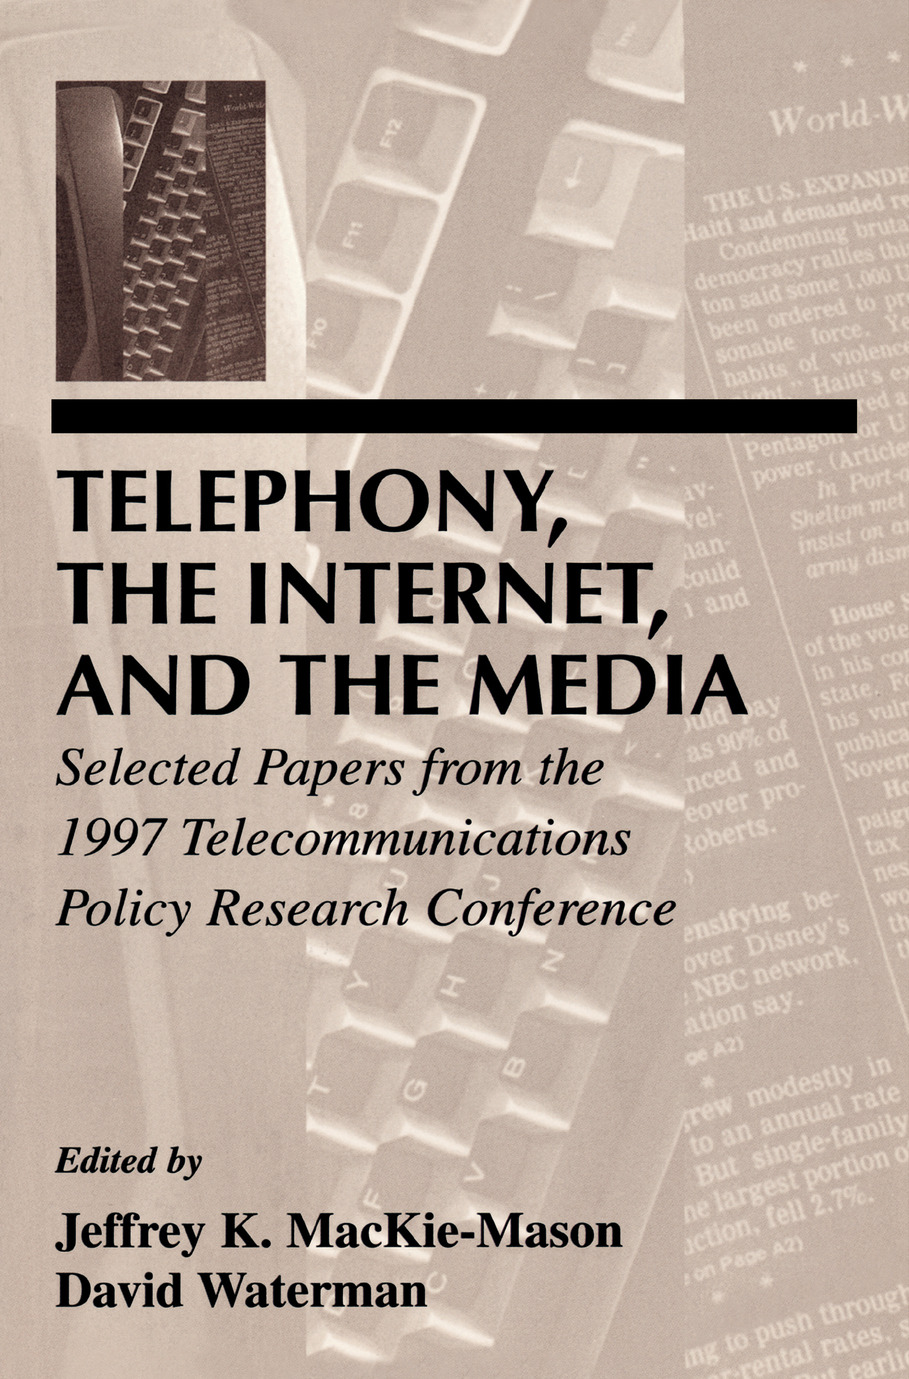 Telephony, the Internet, and the Media: Selected Papers From the 1997 Telecommunications Policy Research Conference, 1st Edition (Paperback) book cover